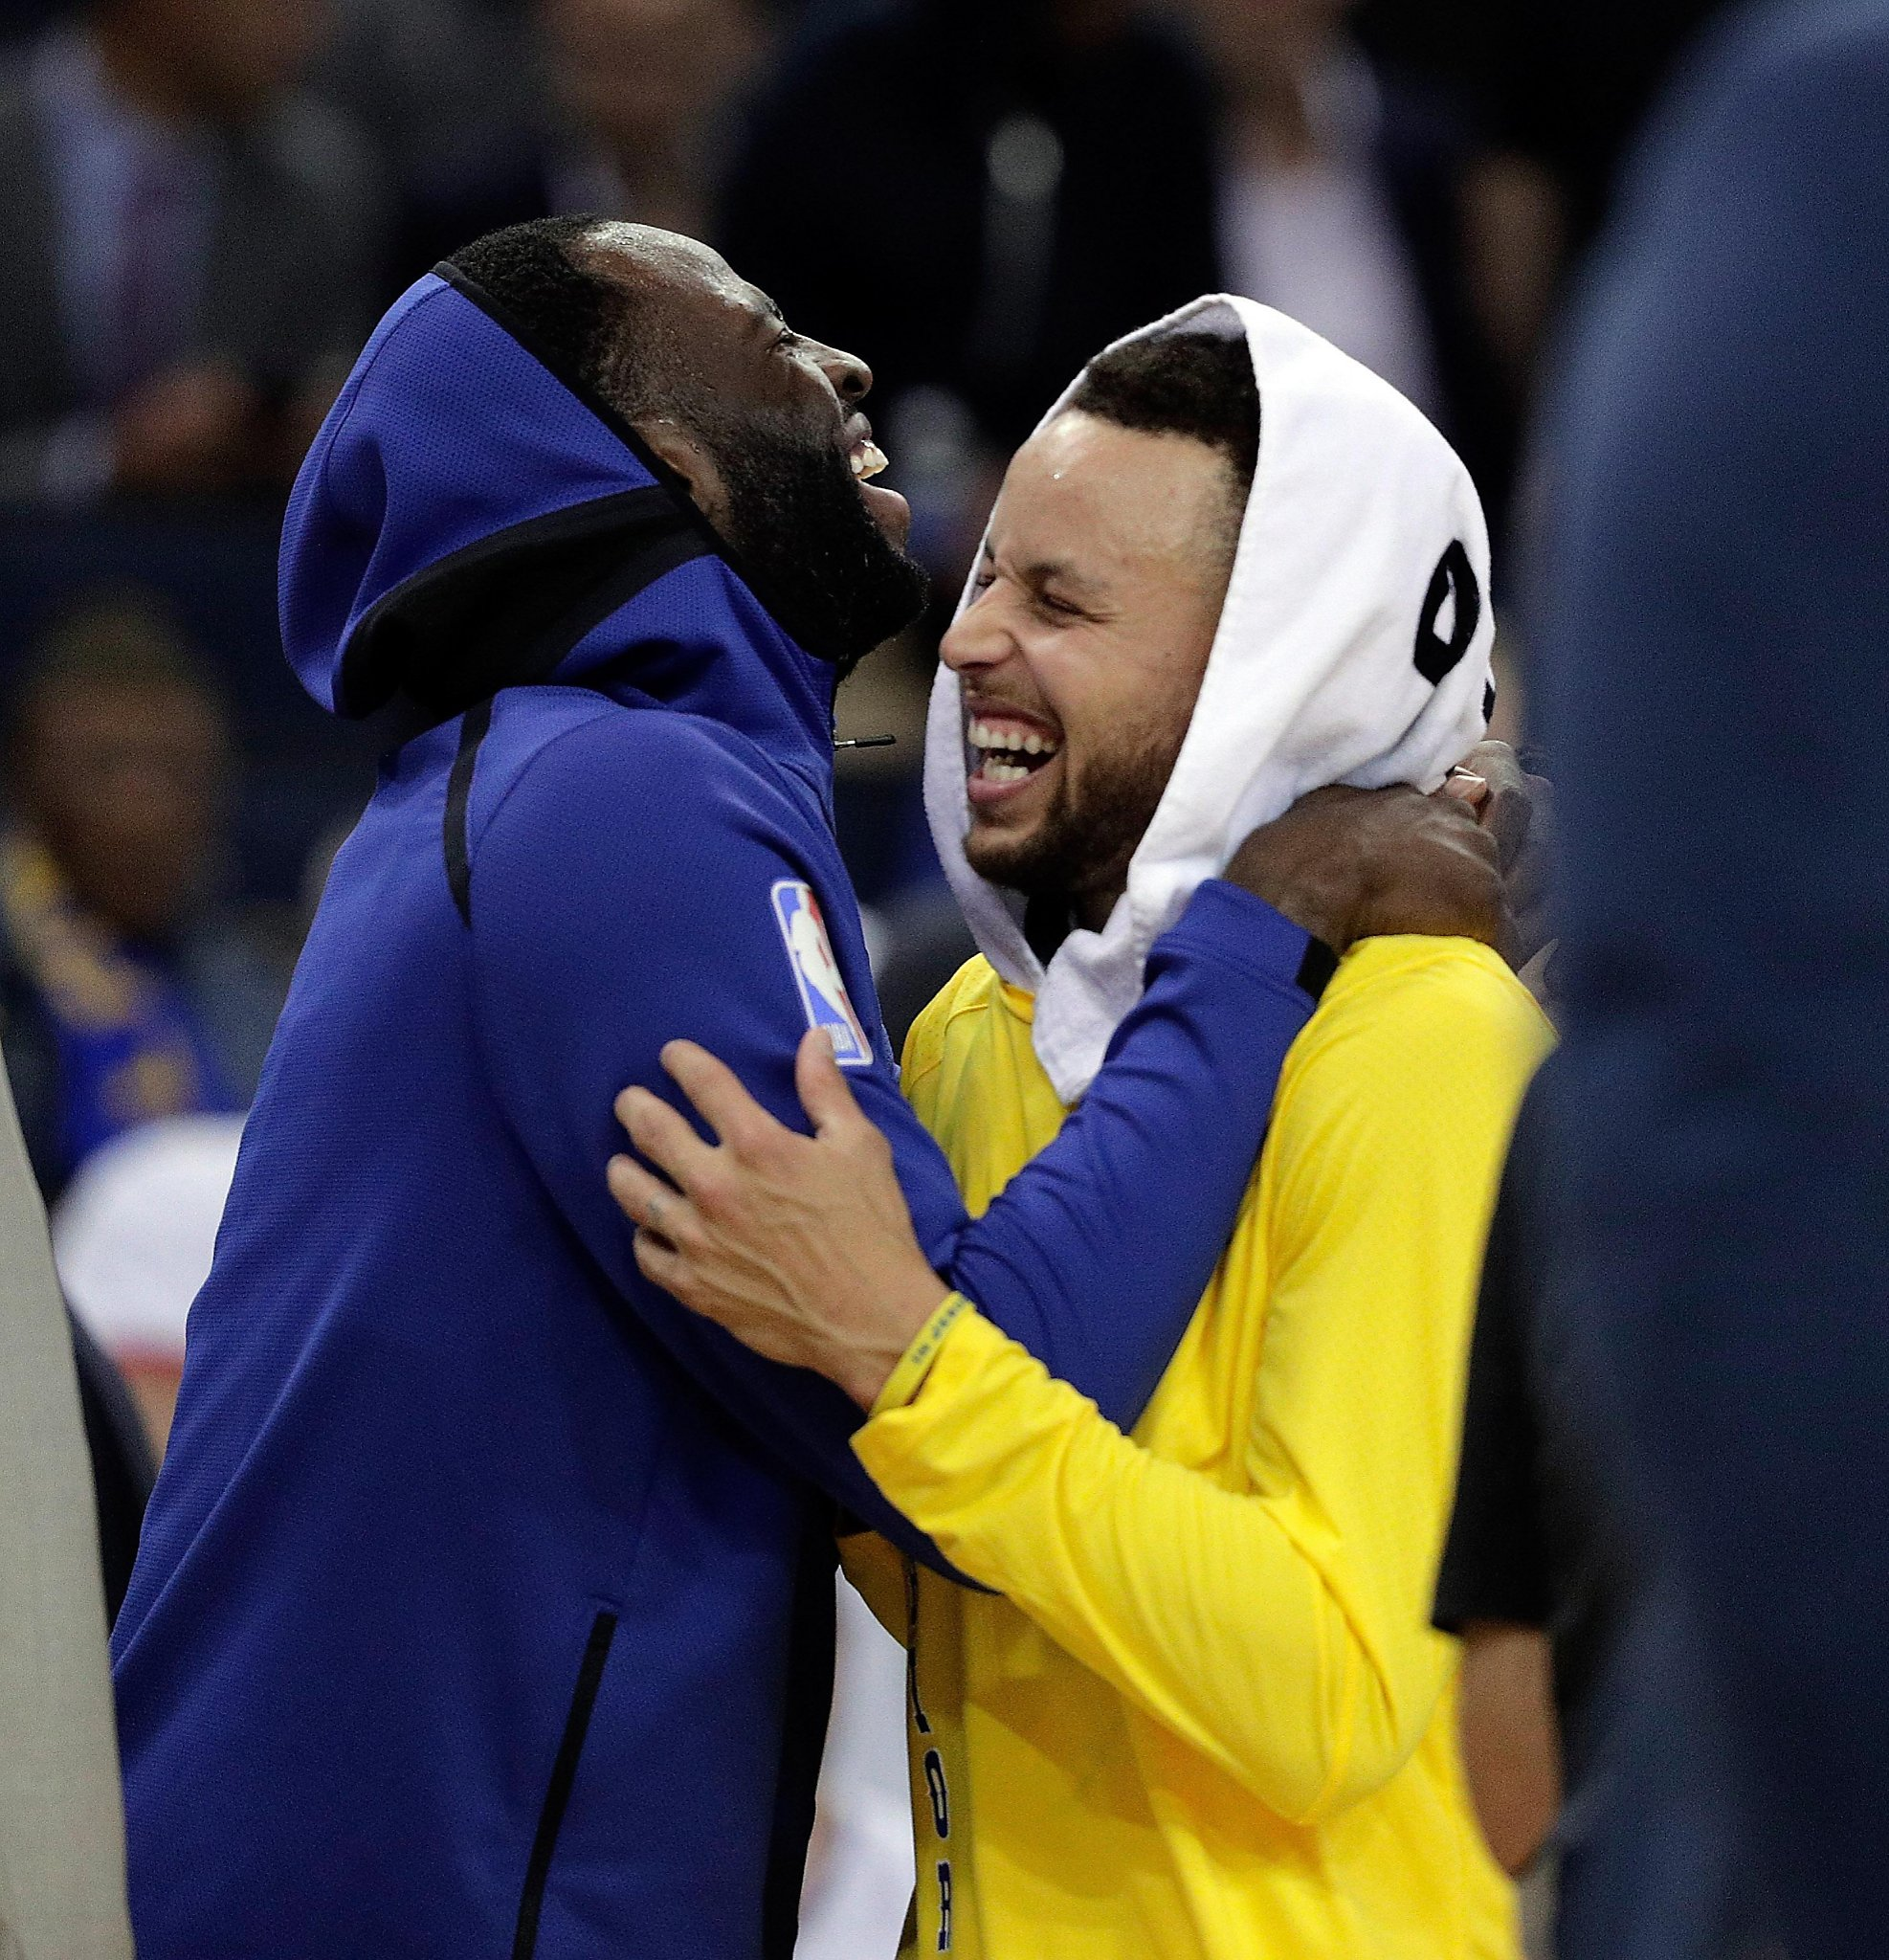 77888338b2f0 Stephen Curry jokingly mocks Draymond Green s shooting form from the bench  - SFChronicle.com